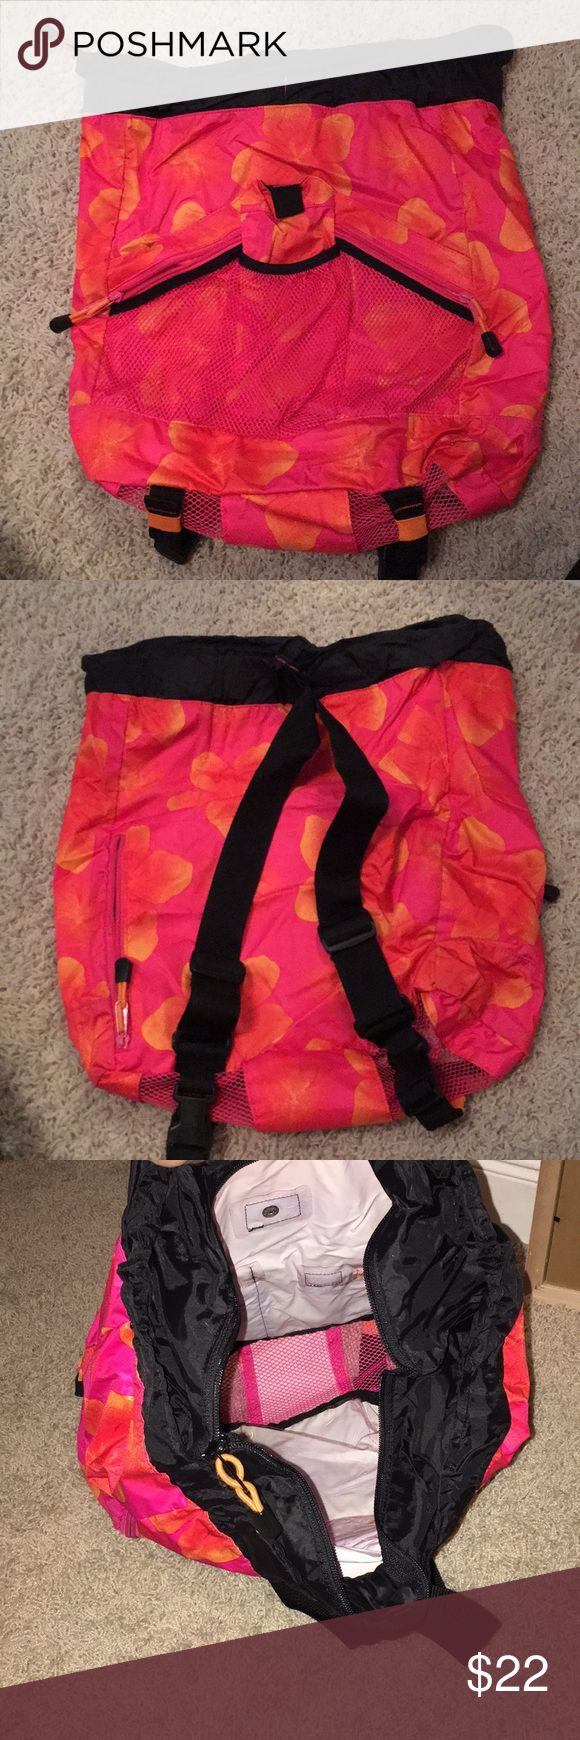 Perfect zipper backpack Perfect condition! Floral pattern. 15 inches tall, 16 inches wide, GAP Bags Backpacks